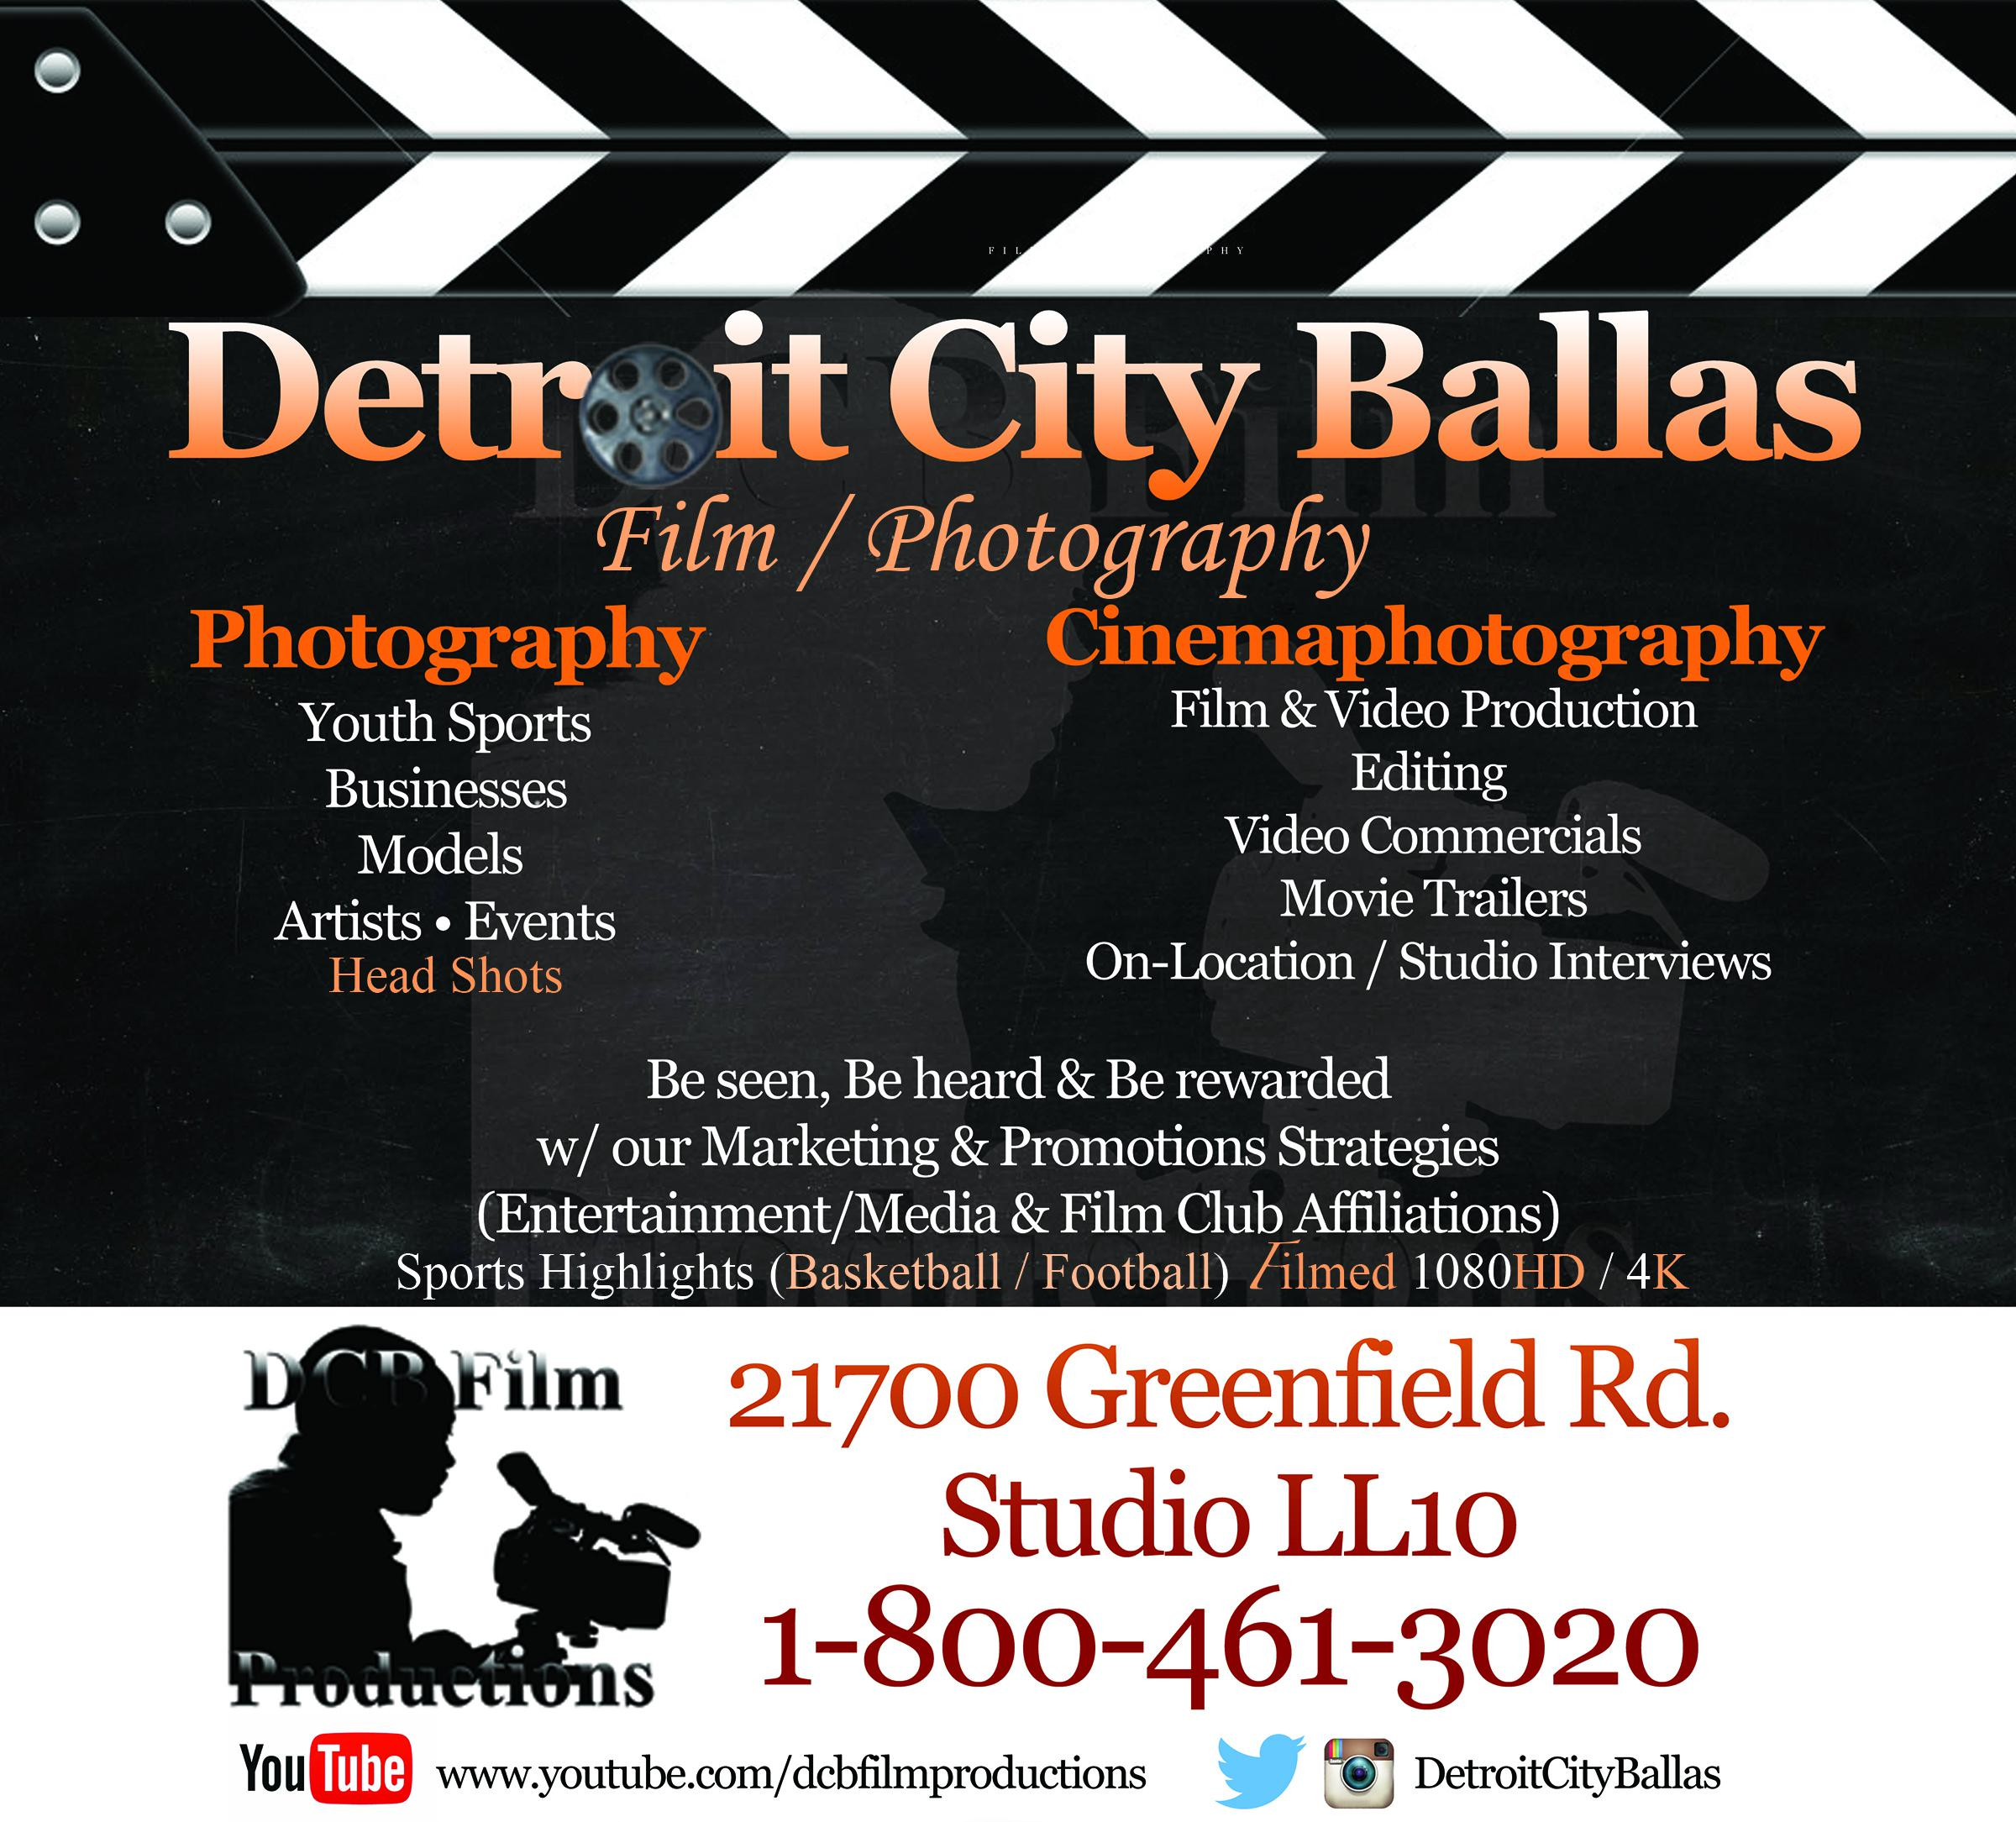 Detroit City Ballas Film/Photography Capture,Film & Edit all Sports Highlights